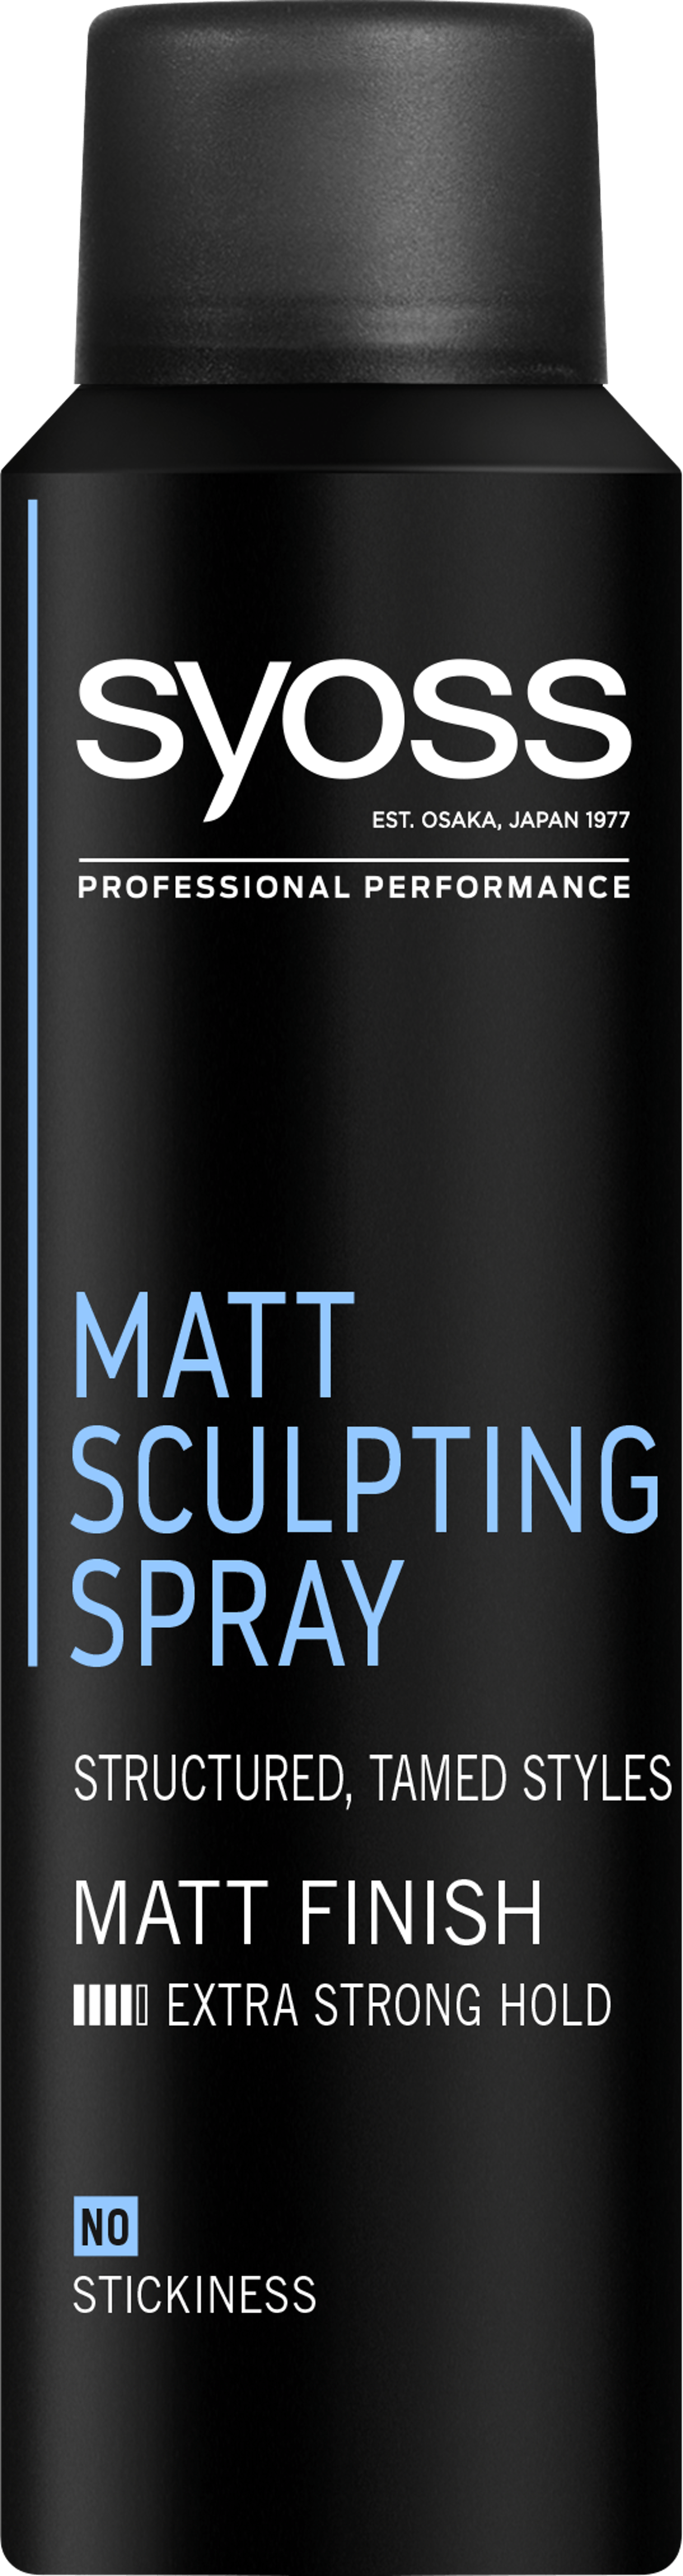 Syoss Matt Sculpting Spray